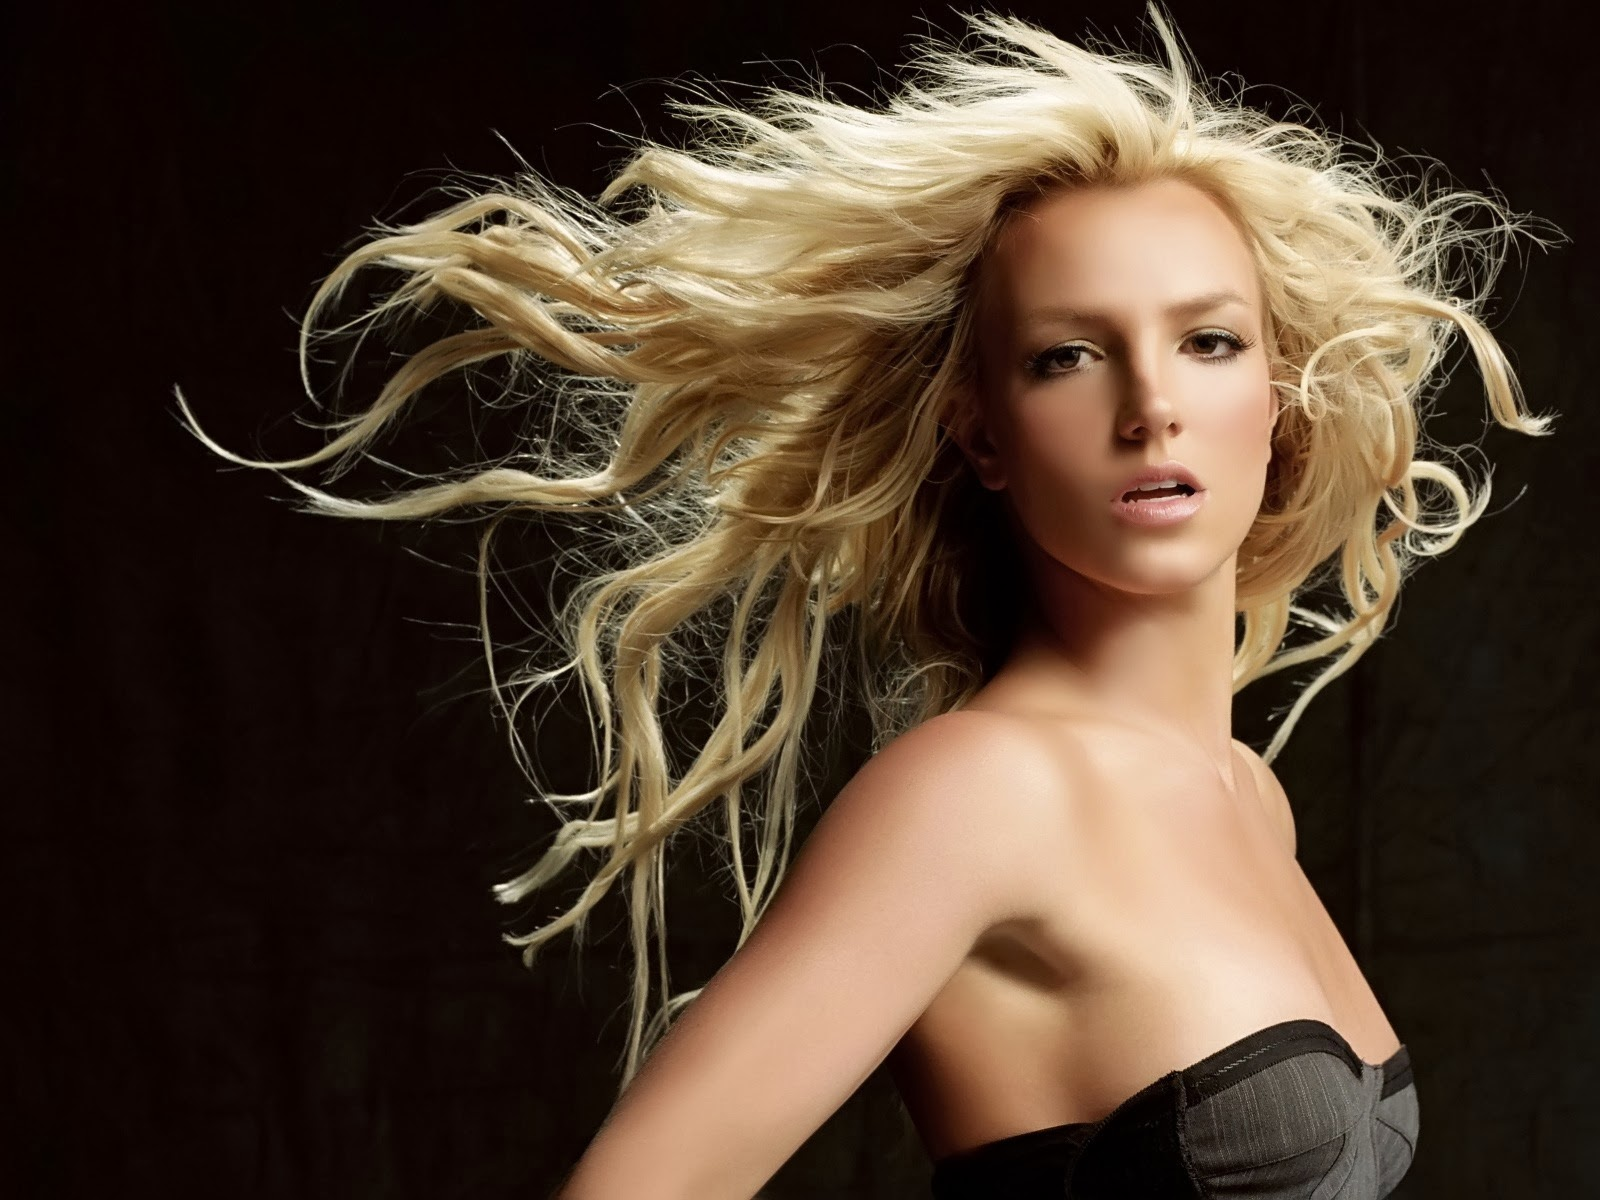 Britney+Spears+Hd+Wallpapers+Free+Download019